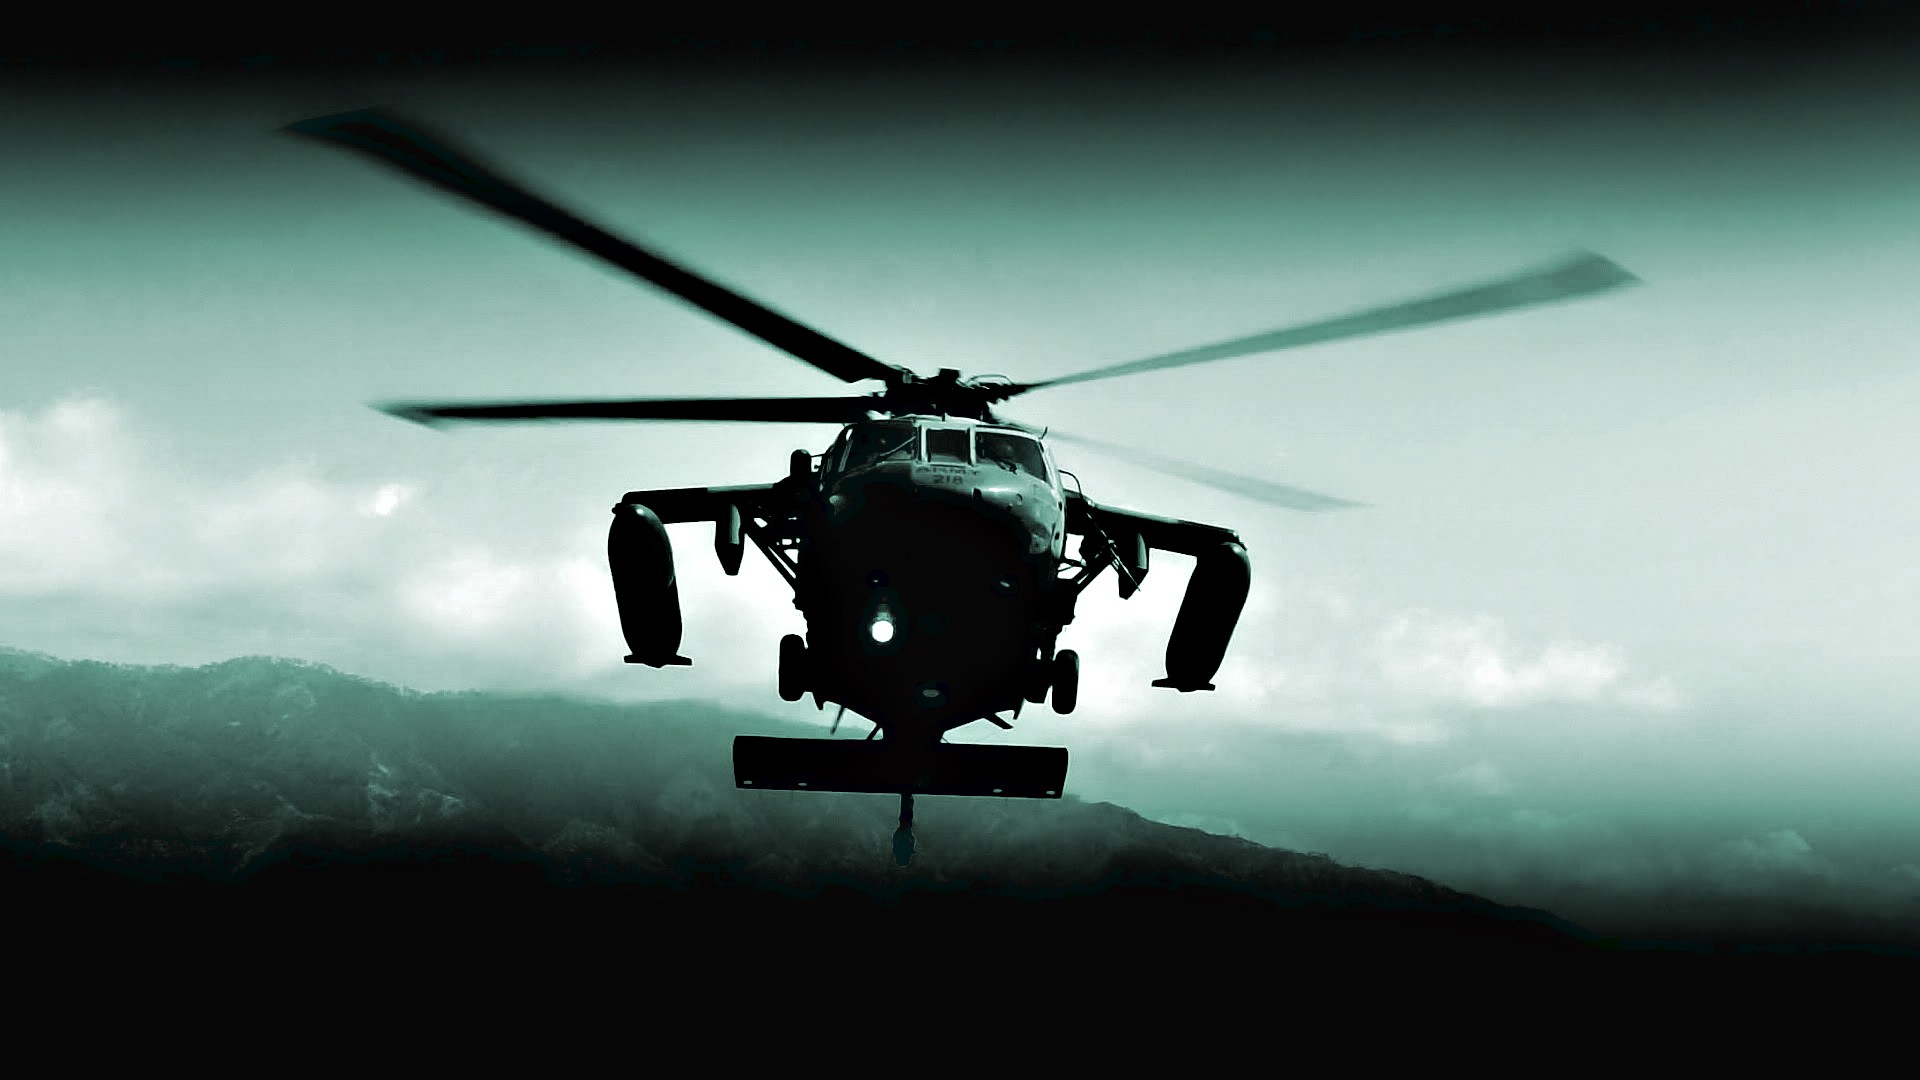 zero dark thirty helicopter with Military Wallpapers Hd 1920x1080 on Big in addition Osama bin Laden 27s  pound in Abbottabad furthermore File Blackhawk as well Americas First Stealth Helicopter additionally Military Helicopter.